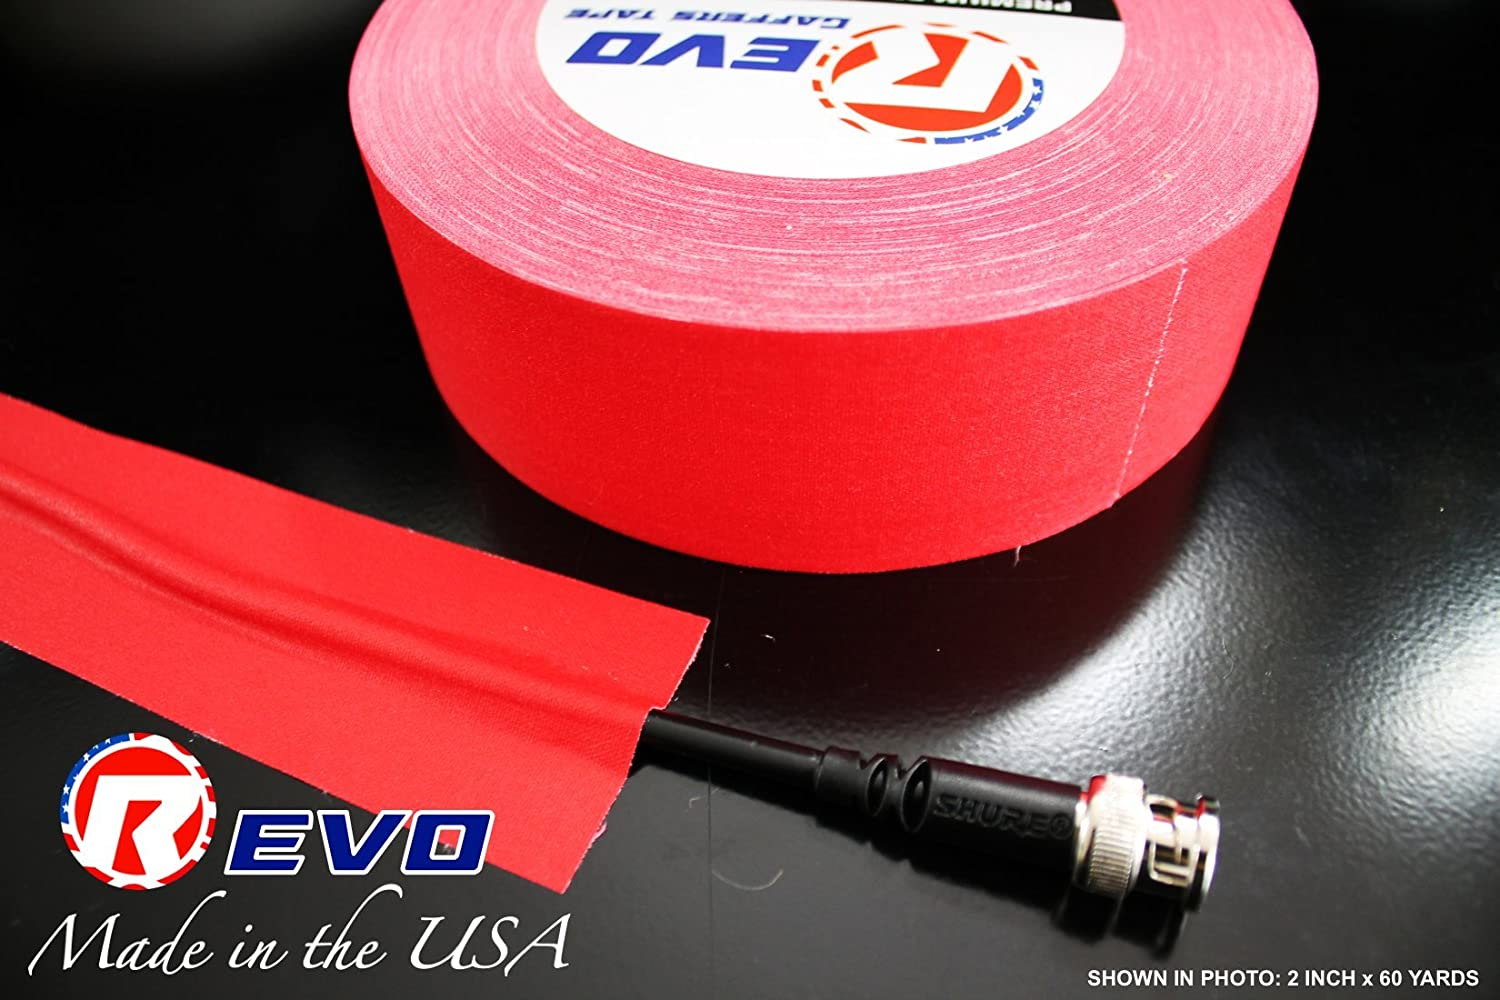 NAVY BLUE GAFFERS 2 x 30yds REVO Premium Professional Gaffers Tape MADE IN USA Camera Tape-Better than Duct Tape SINGLE ROLL